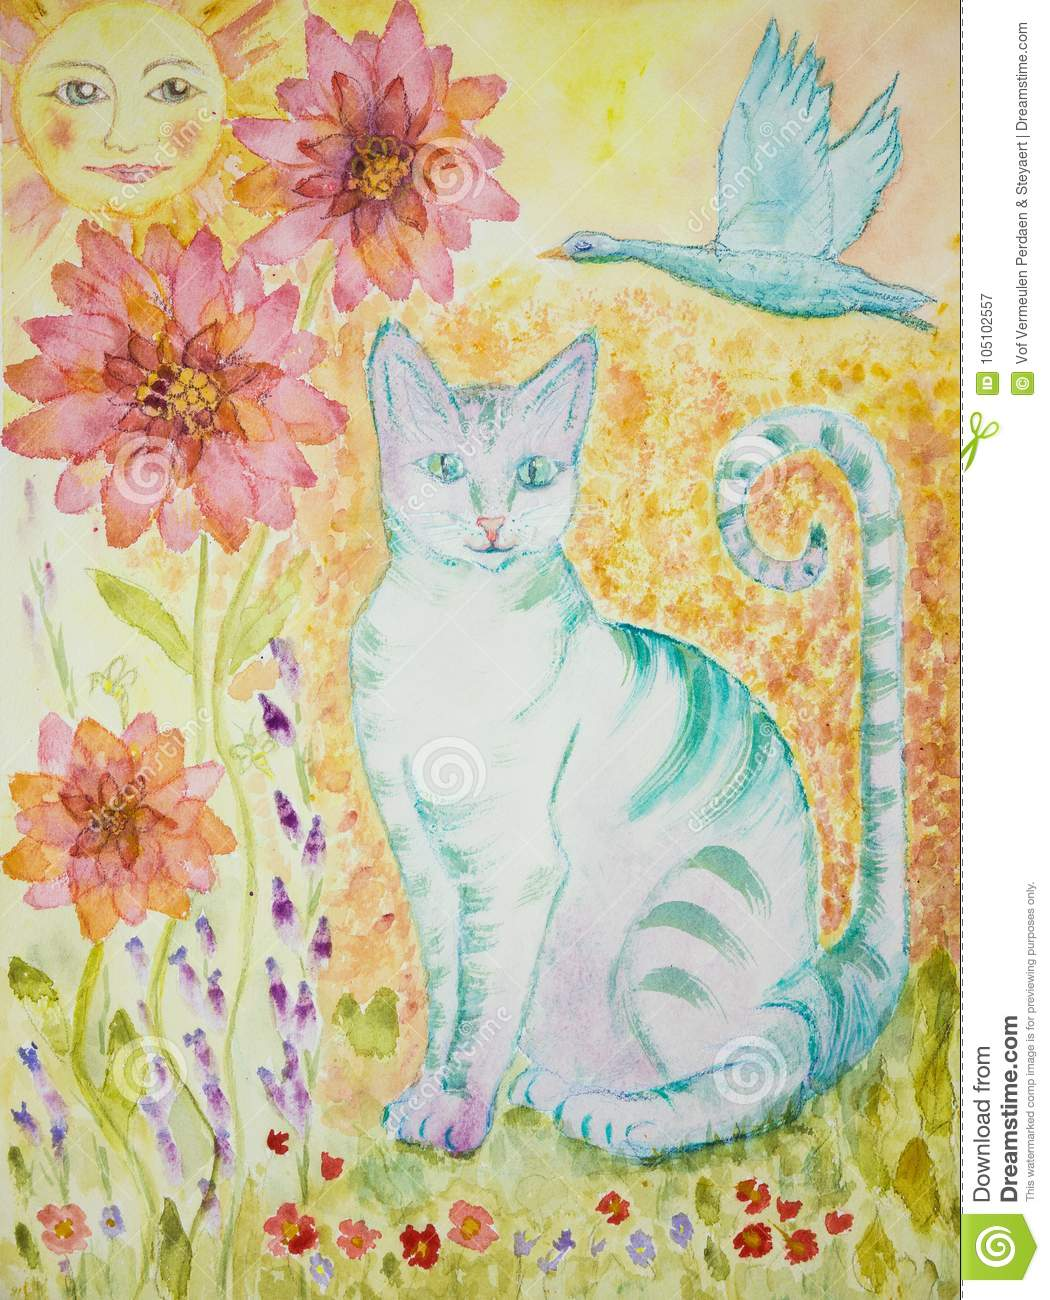 Turquoise Cat With Greenish Eyes, Flying Goose, Sun And Flowers ...